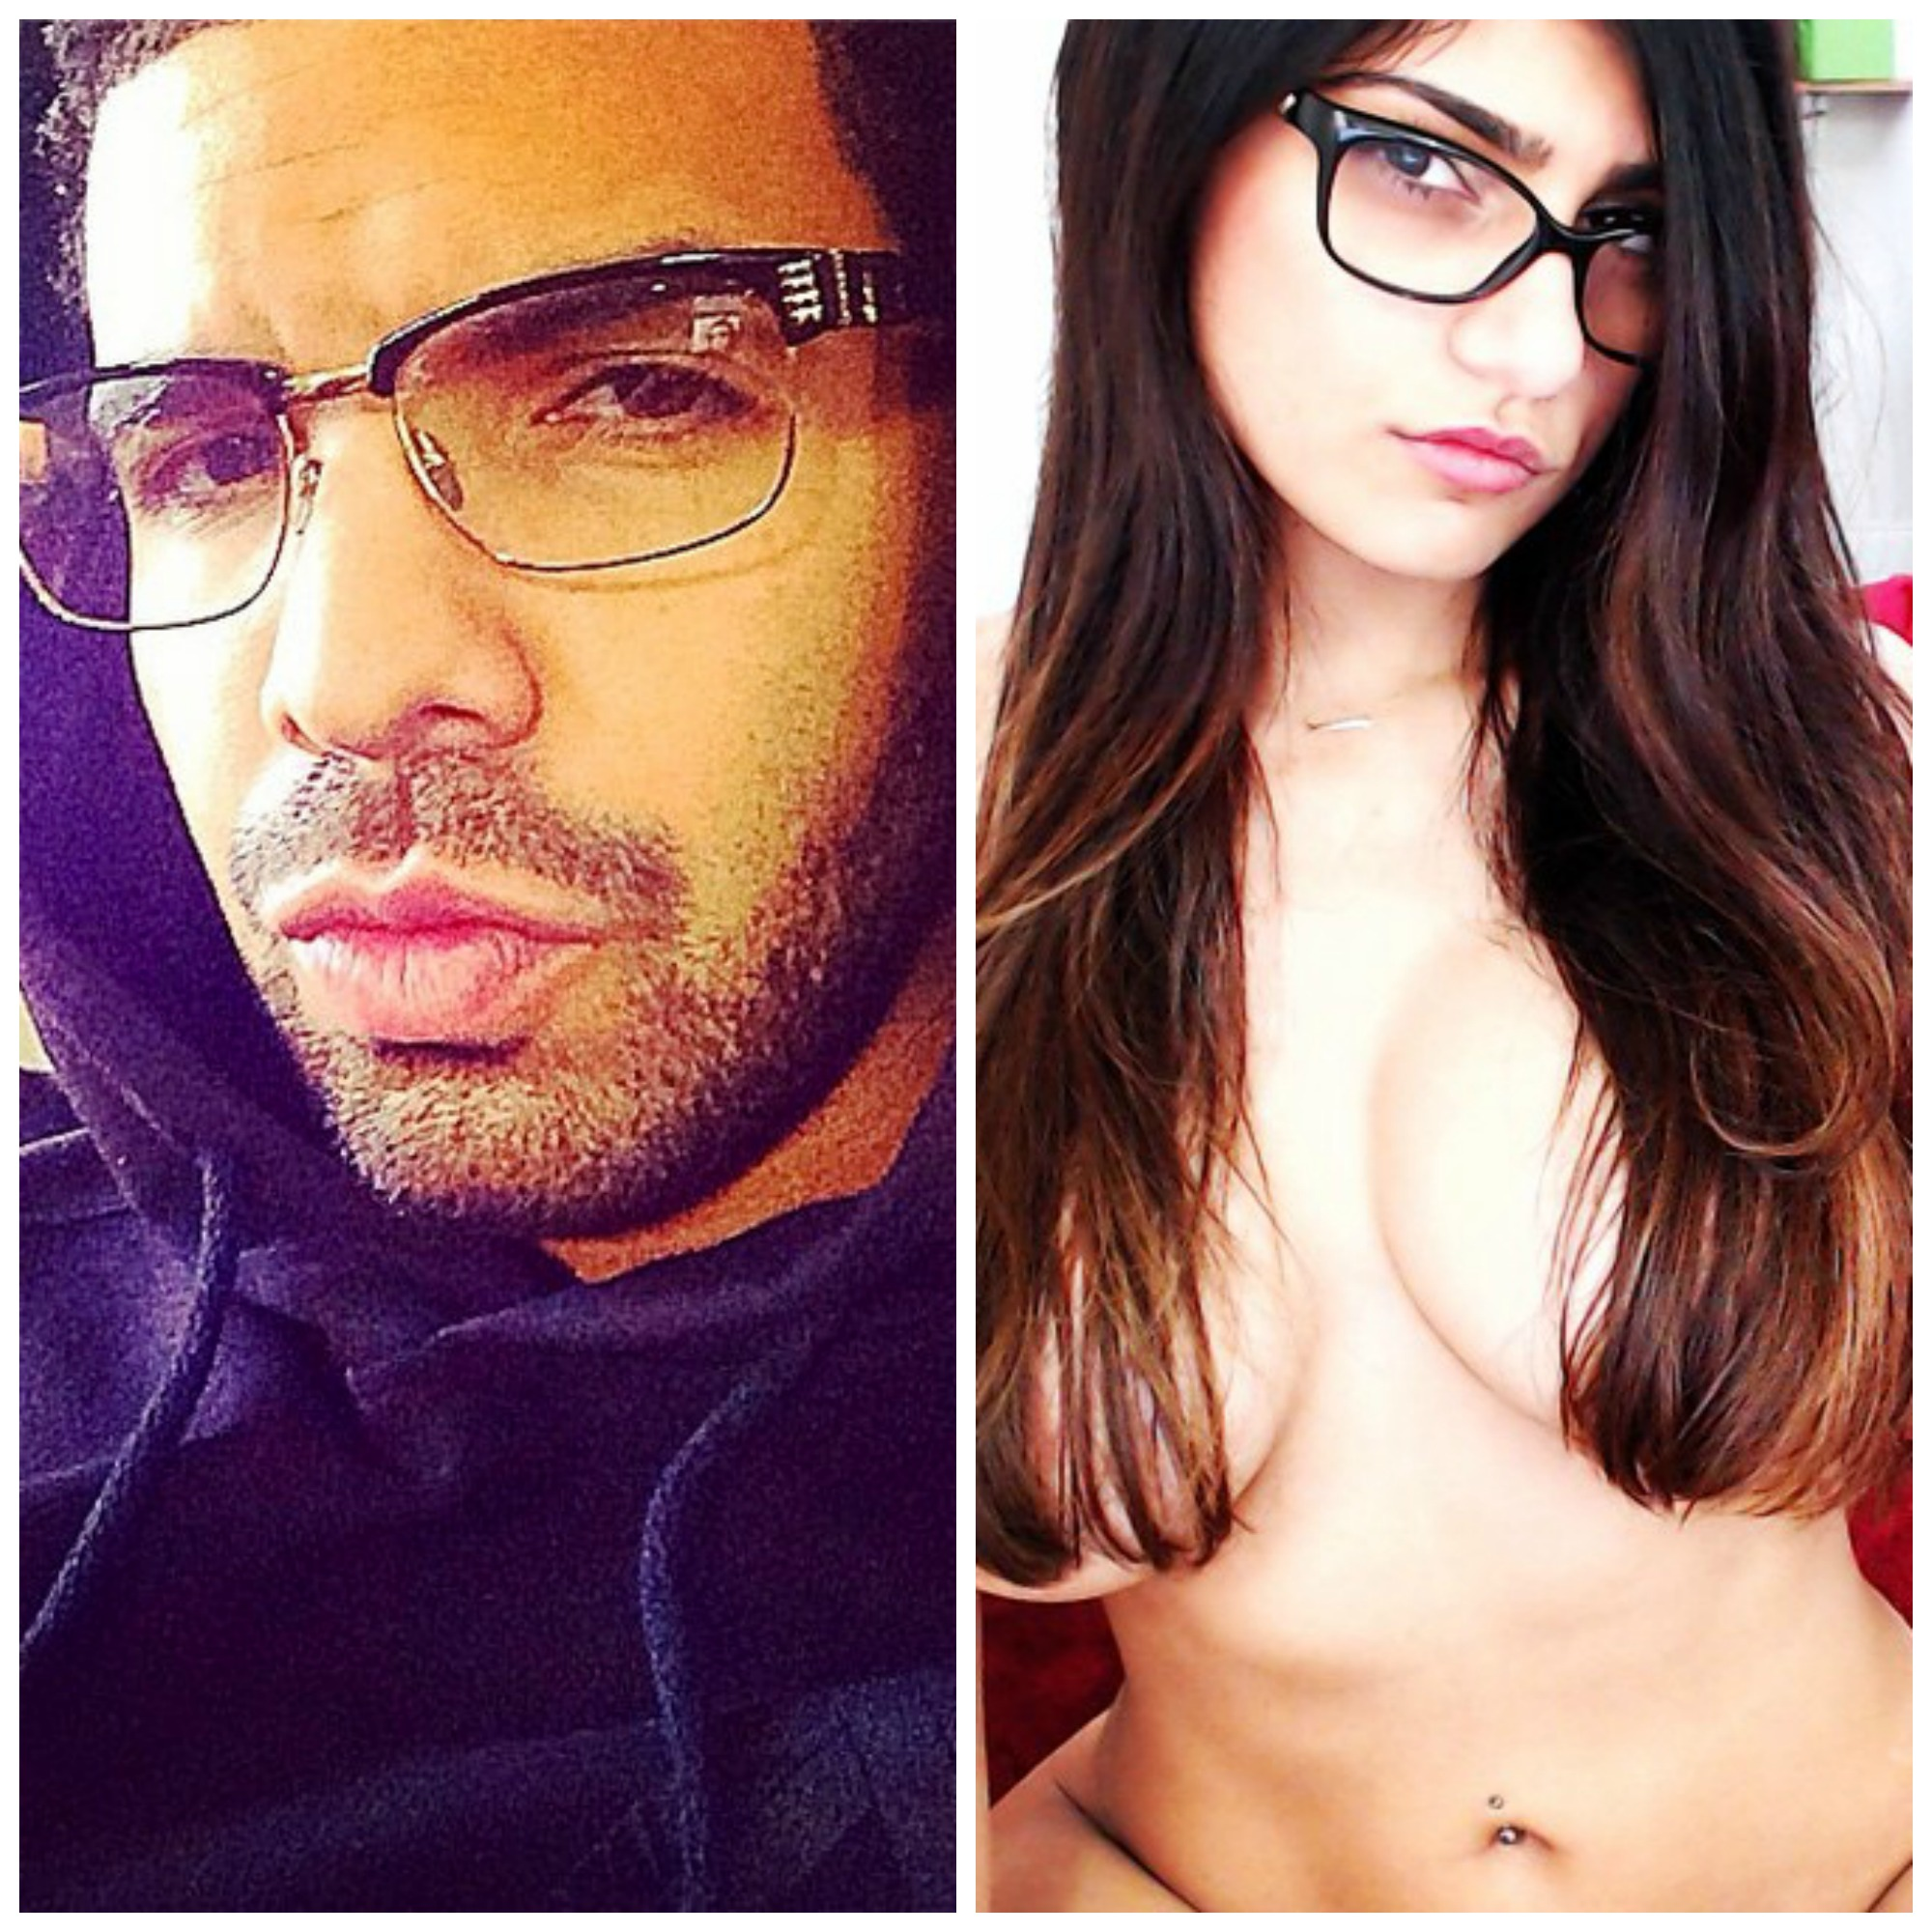 Drake Sent Mia Khalifa Some Nasty DMs!